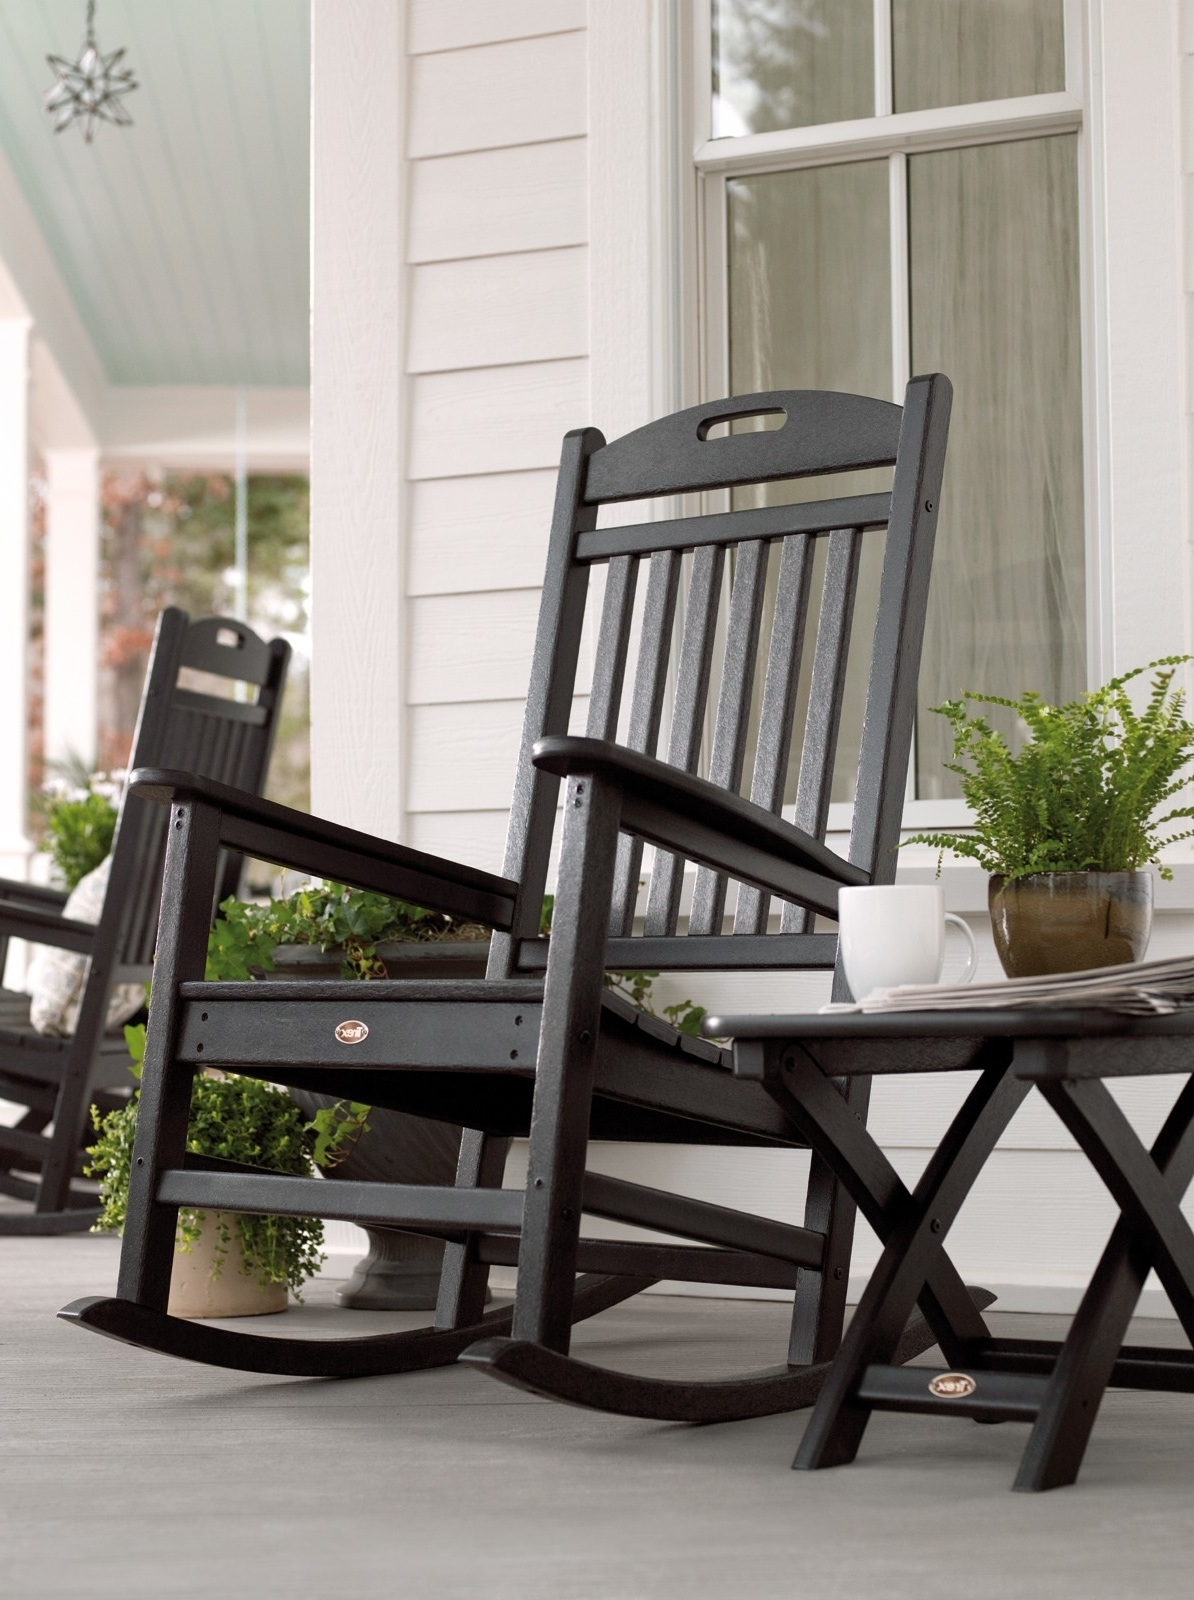 Patio Wooden Rocking Chairs For Current Patio & Garden : Outdoor Rocking Chair Seat Cushions Outdoor Rocking (View 12 of 15)